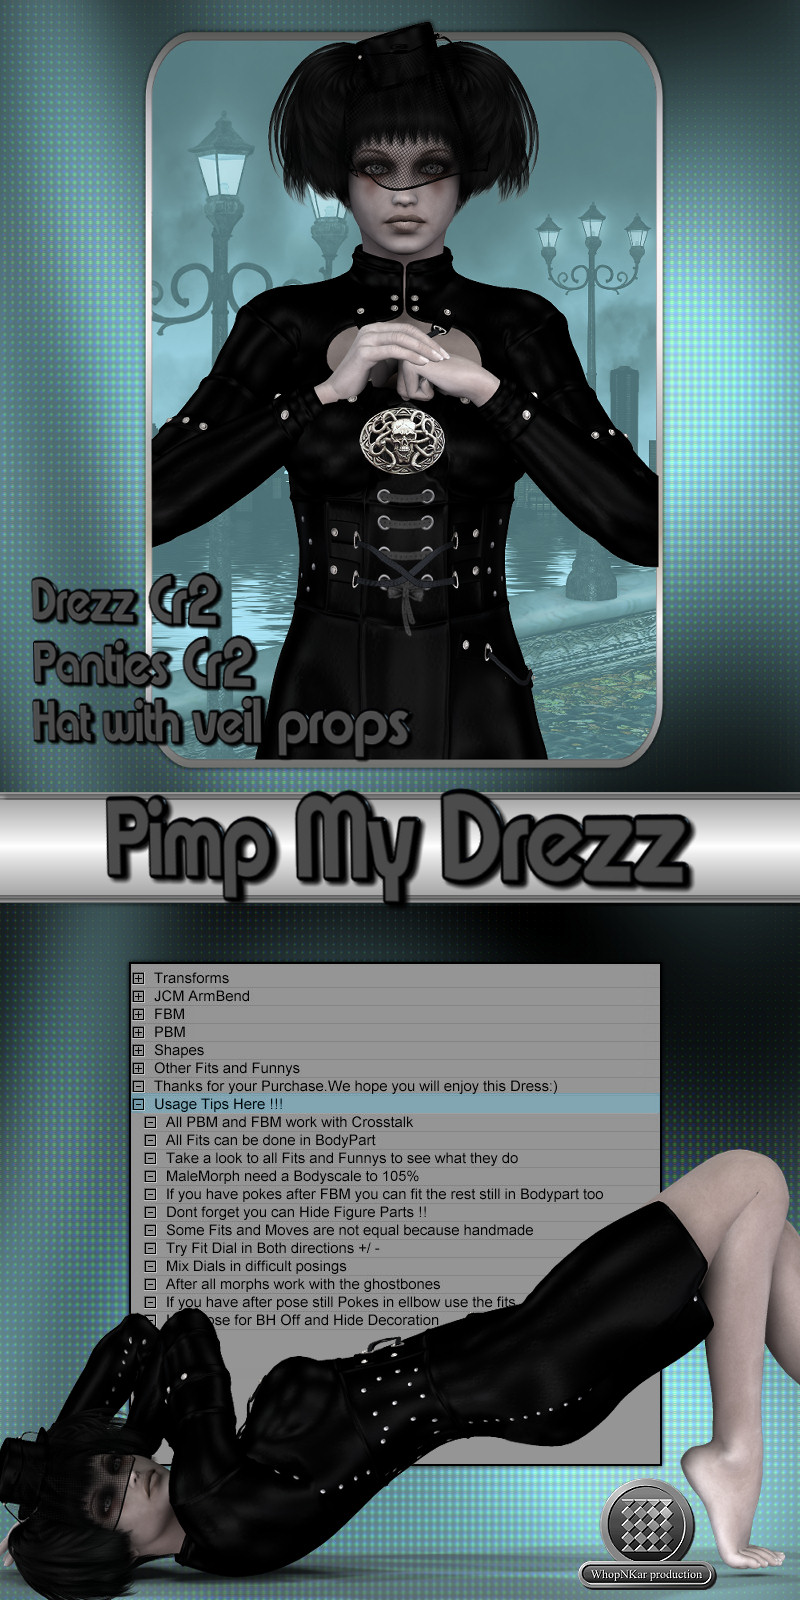 Pimp My Drezz